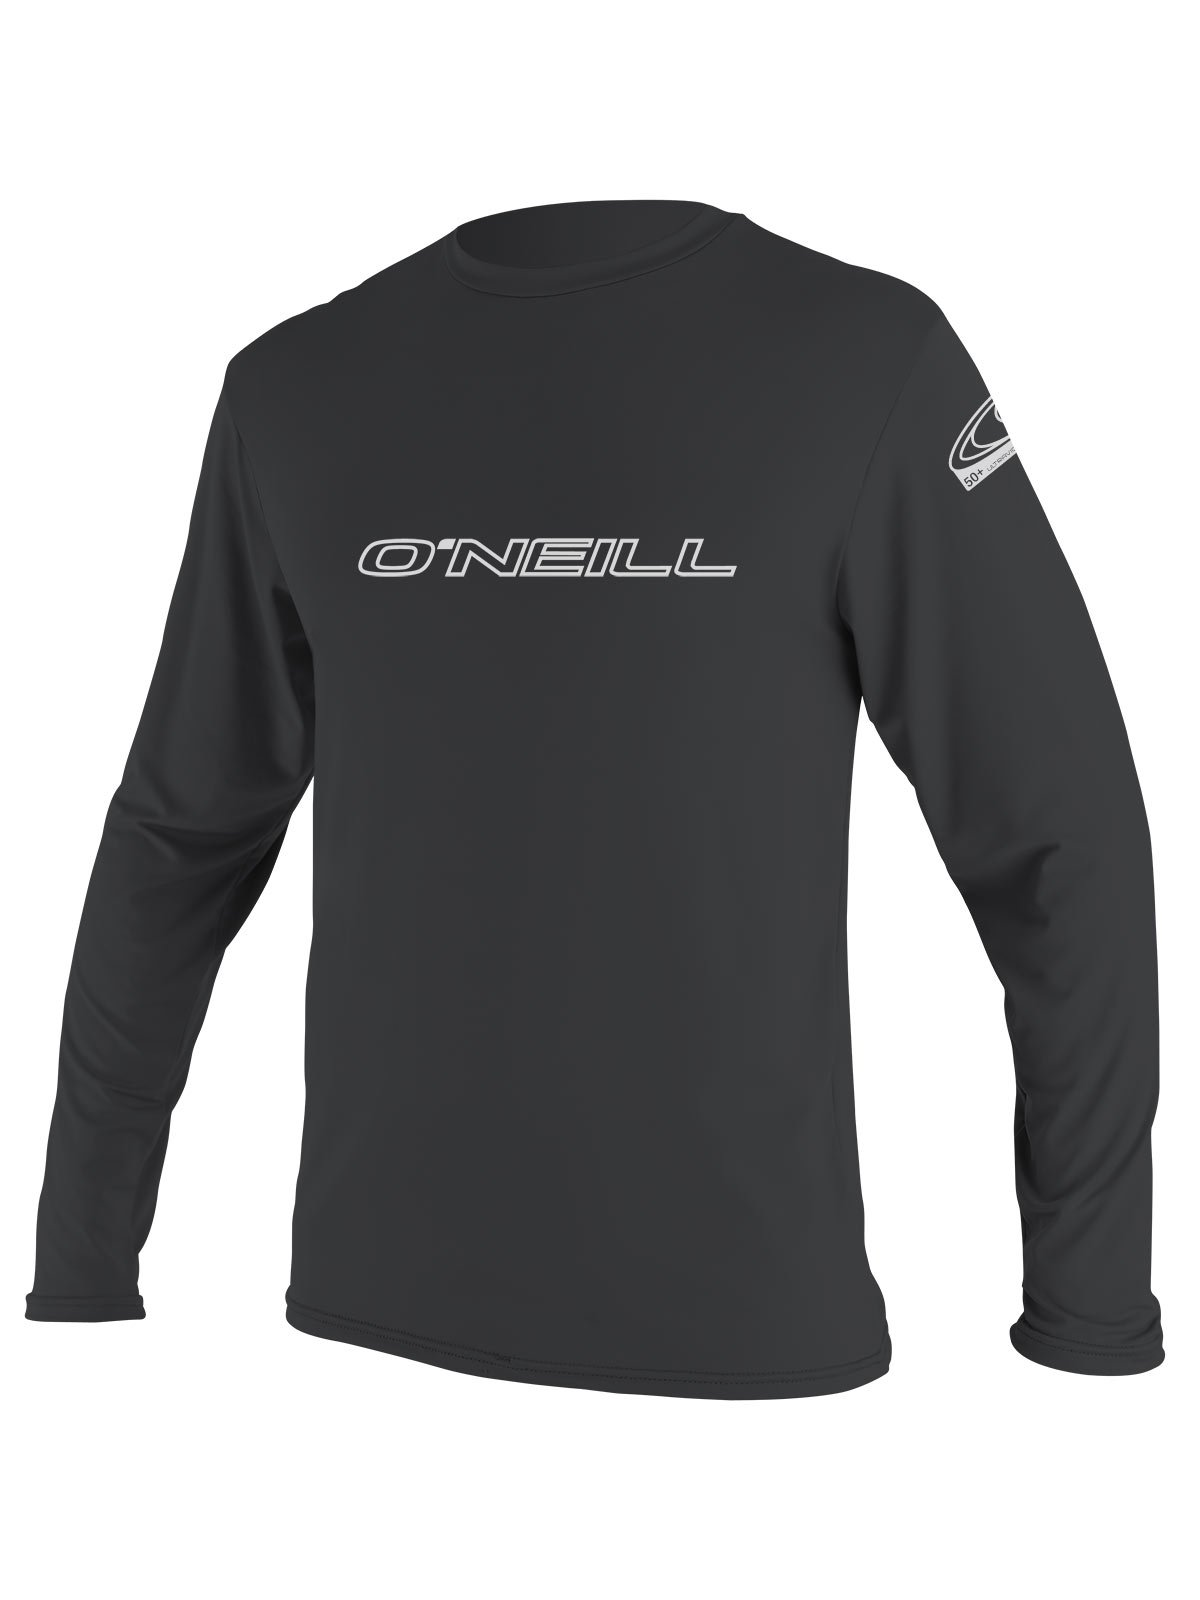 O'Neill Men's Basic Skins Longsleeve Rash Tee XLT Graphite (4339IS) by O'Neill Wetsuits